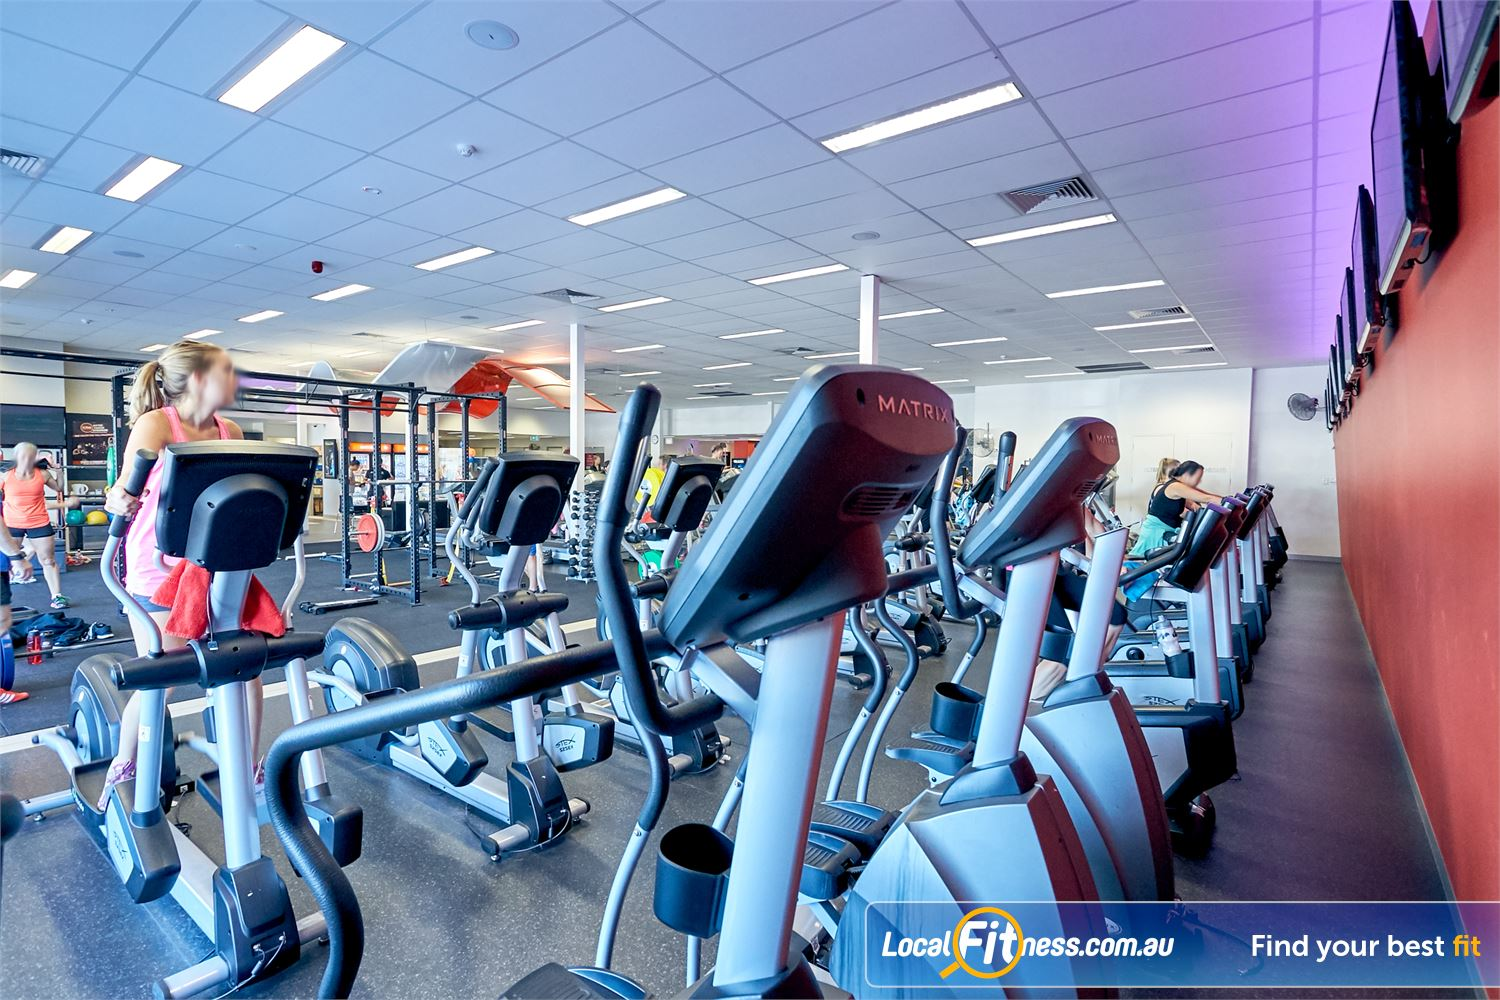 Goodlife Health Clubs Cross Roads Westbourne Park Our Cross Roads gym features plenty of cardio machines.